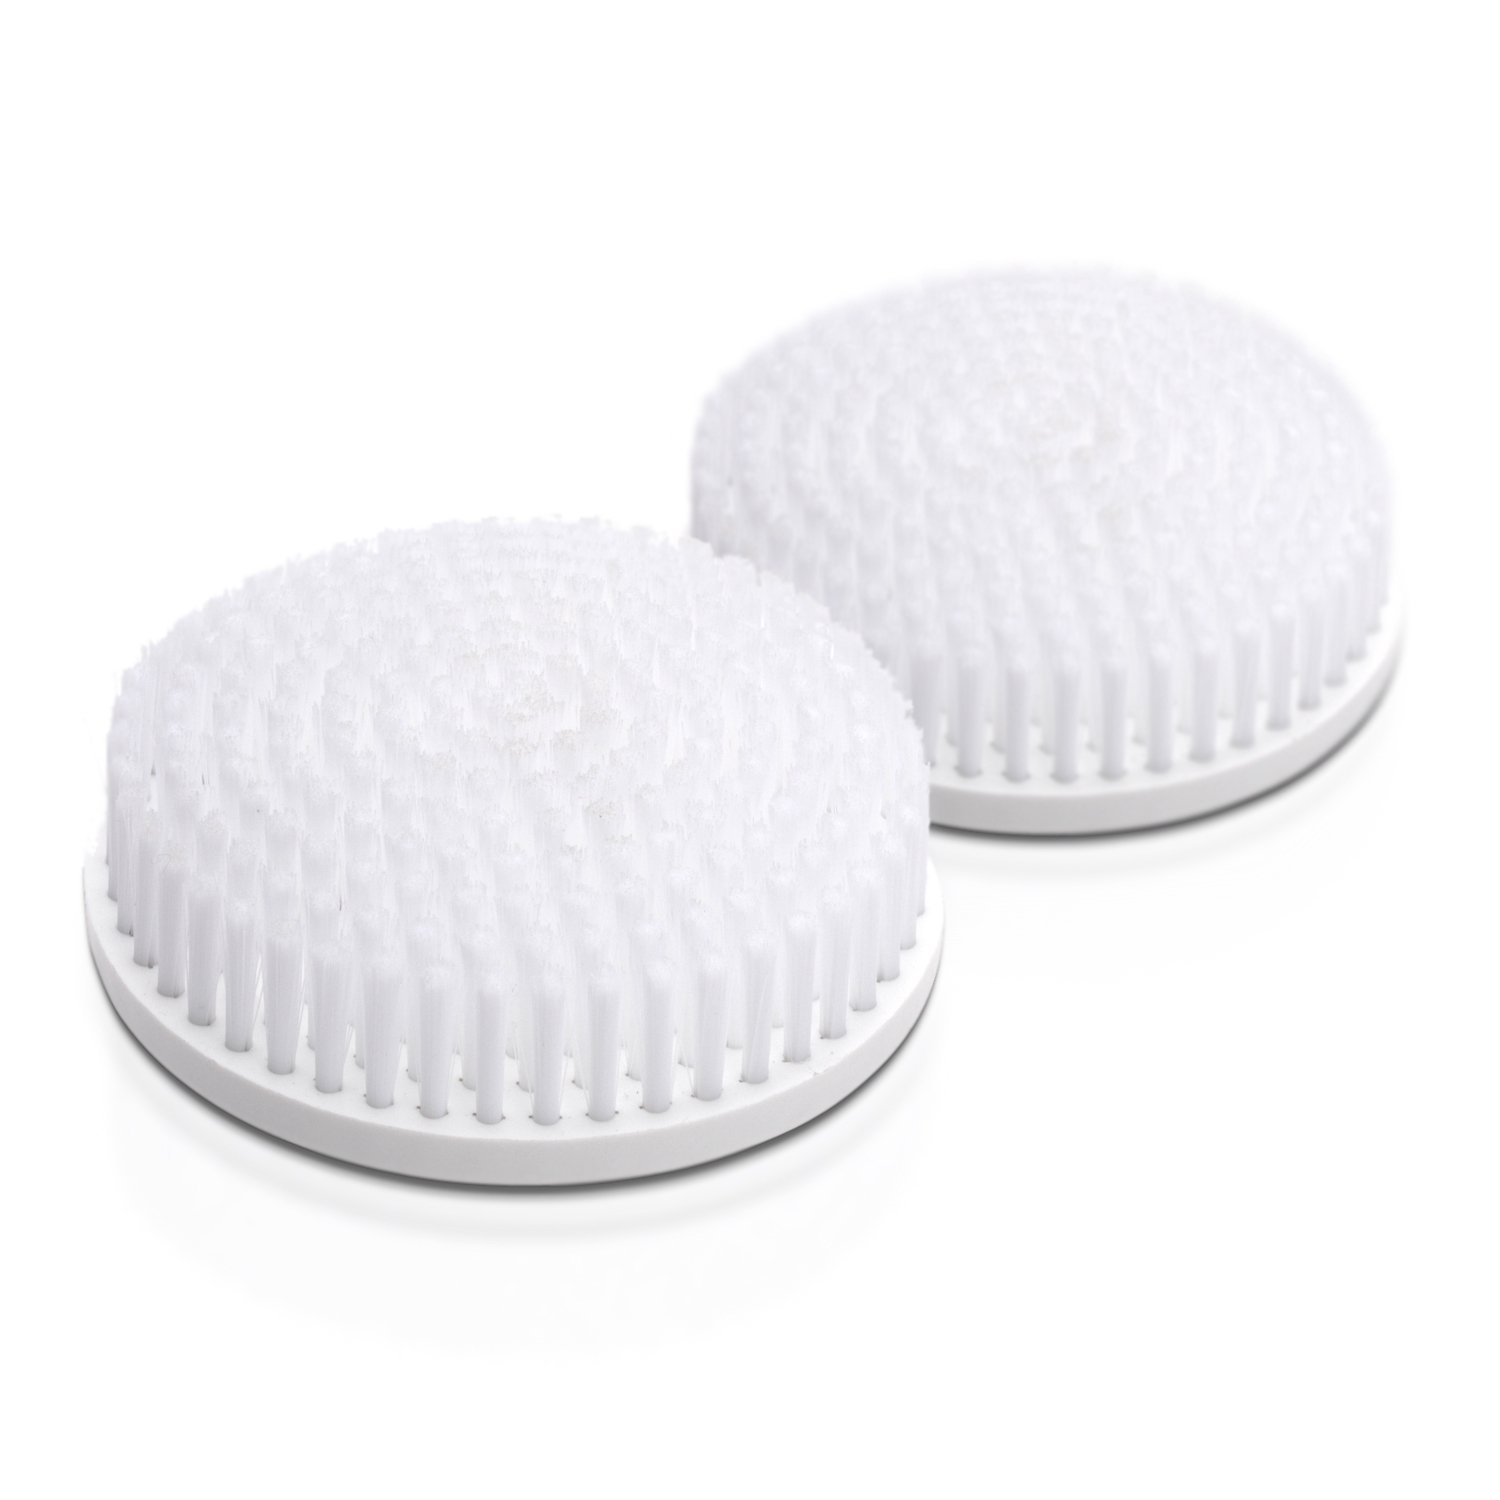 Replacement Heads for The Professional Skin Care System by ToiletTree Products, Body Brush